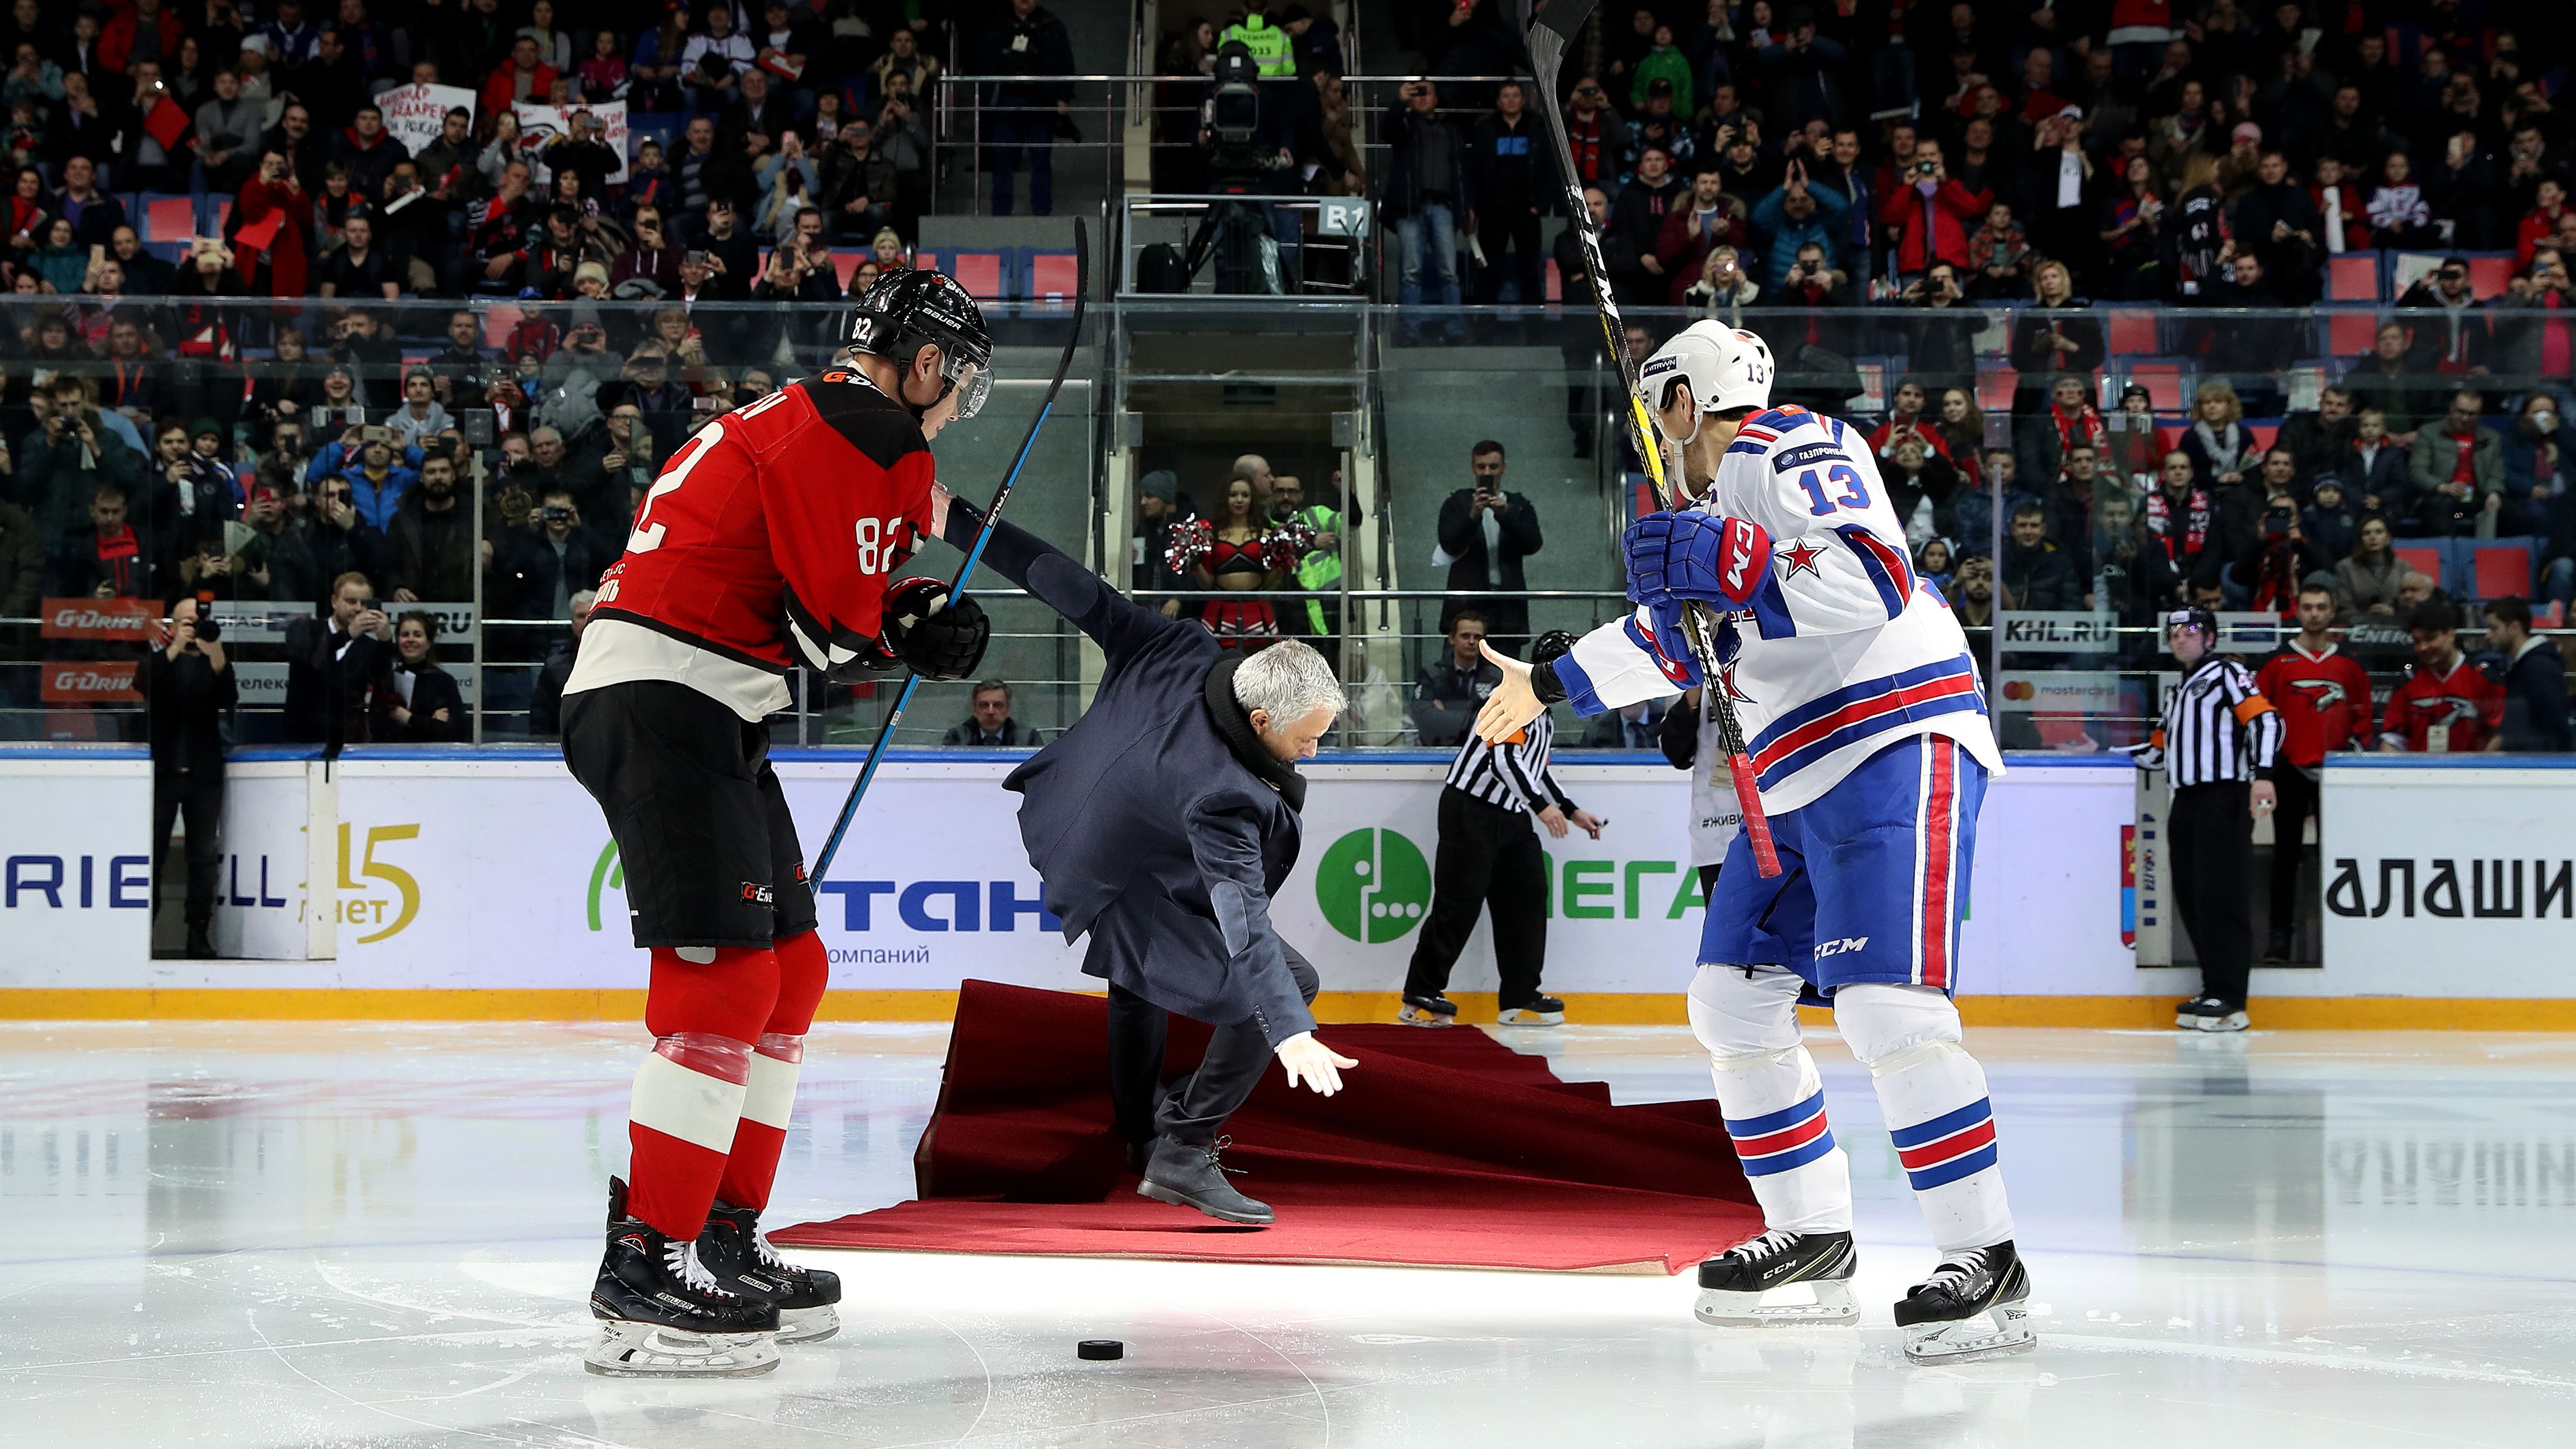 Video: Jose Mourinho drops puck at KHL game, falls down on ice